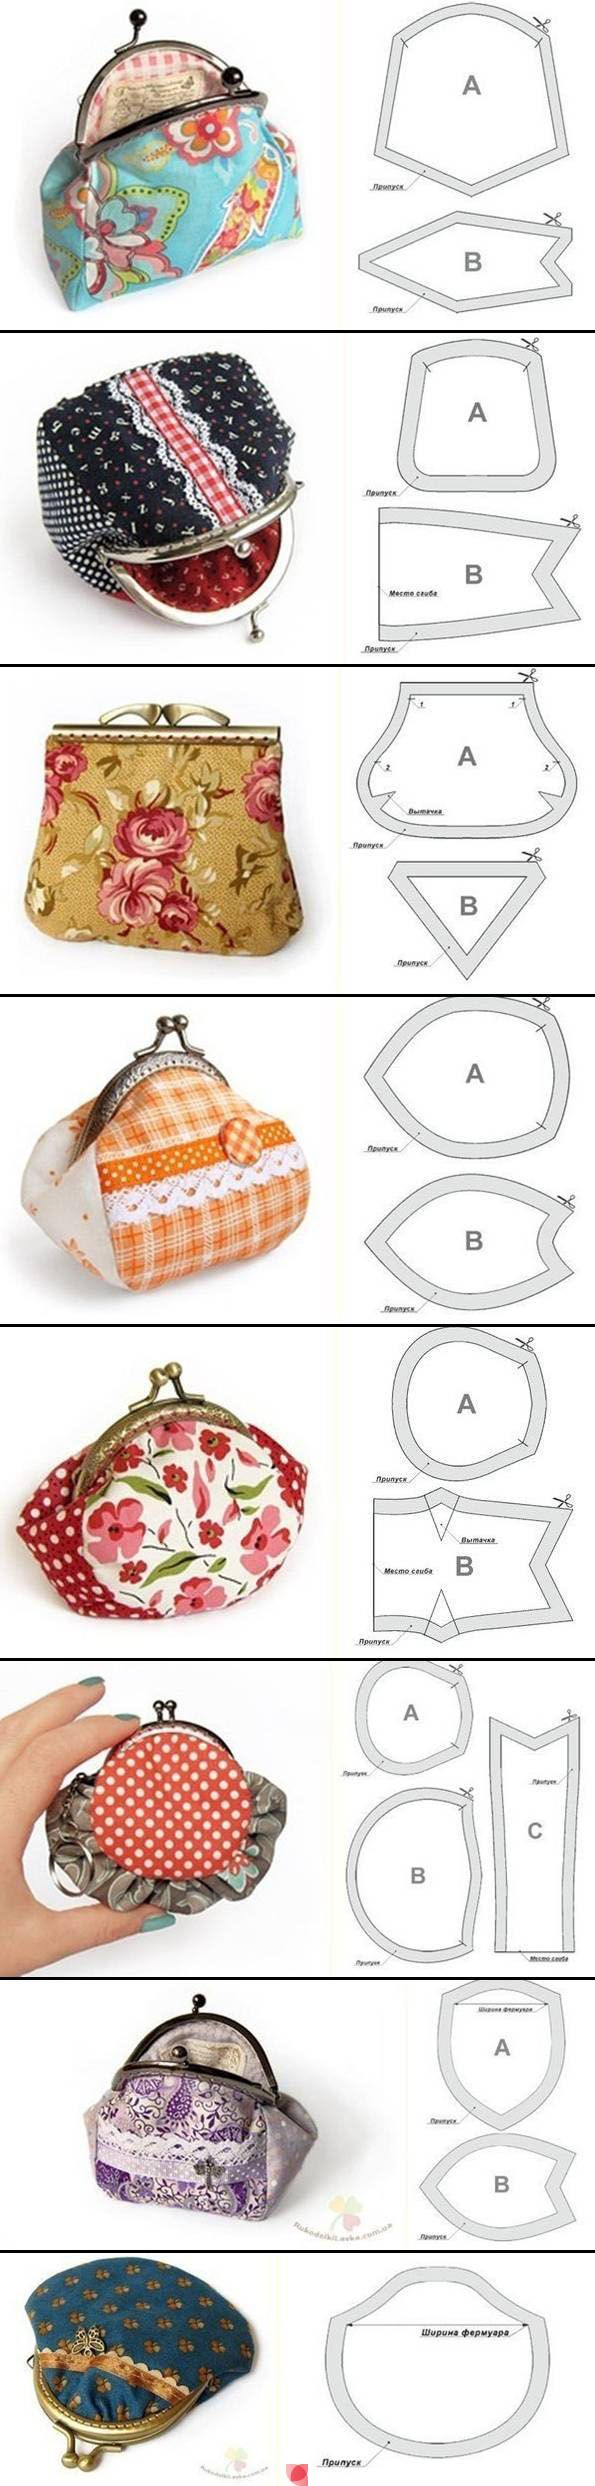 Purse Patterns Manualidades Pinterest Monederos Boquilla Y  ~ Como Hacer Bolsas De Tela Para Zapatos